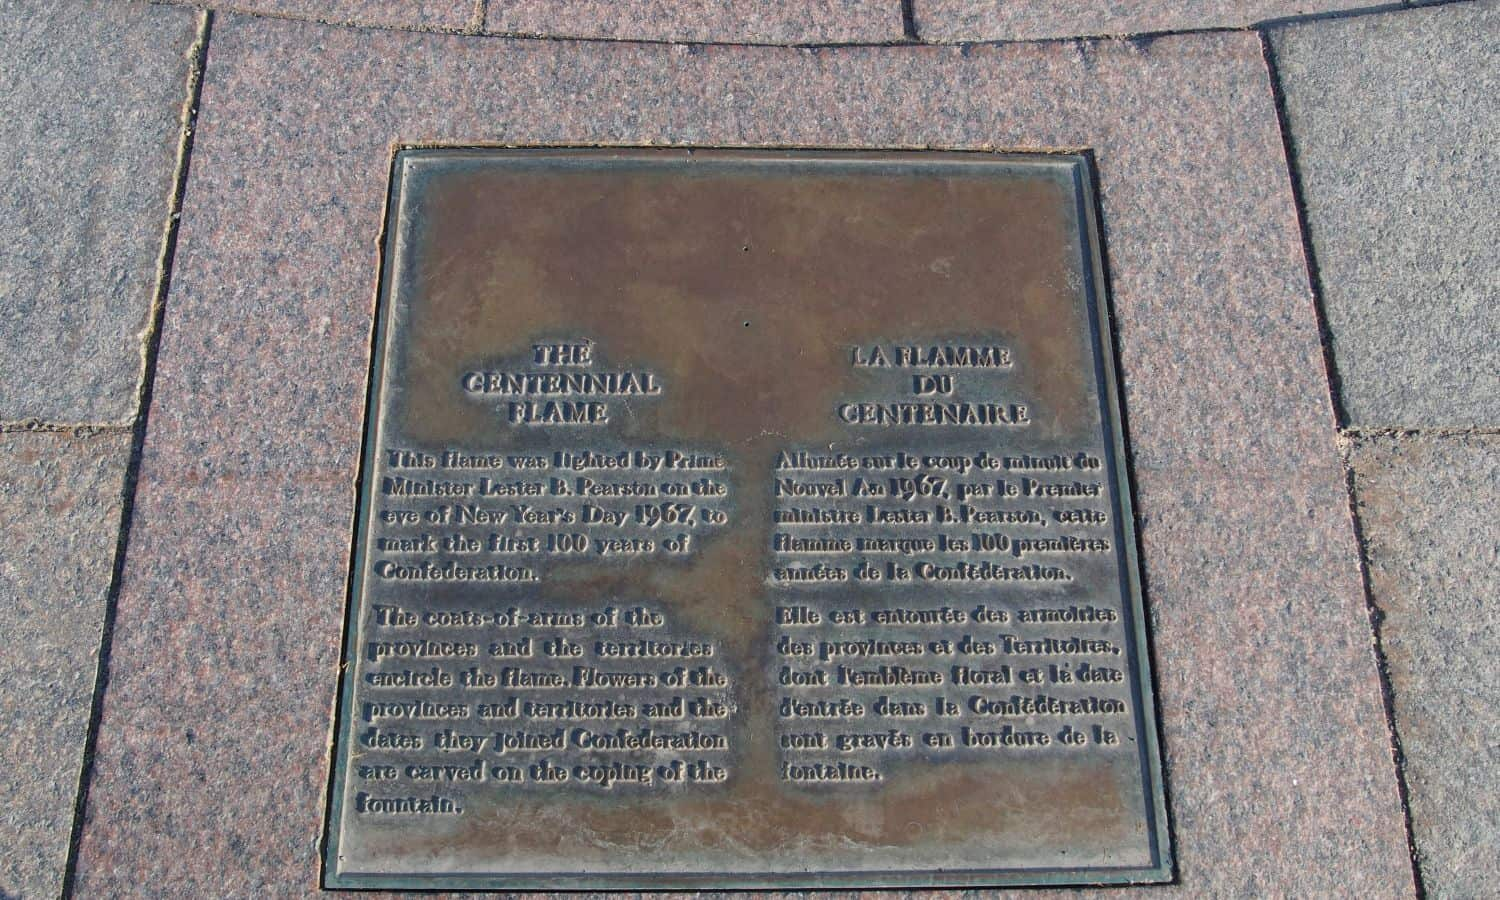 Plaque identifying the monument embedded in the pavers